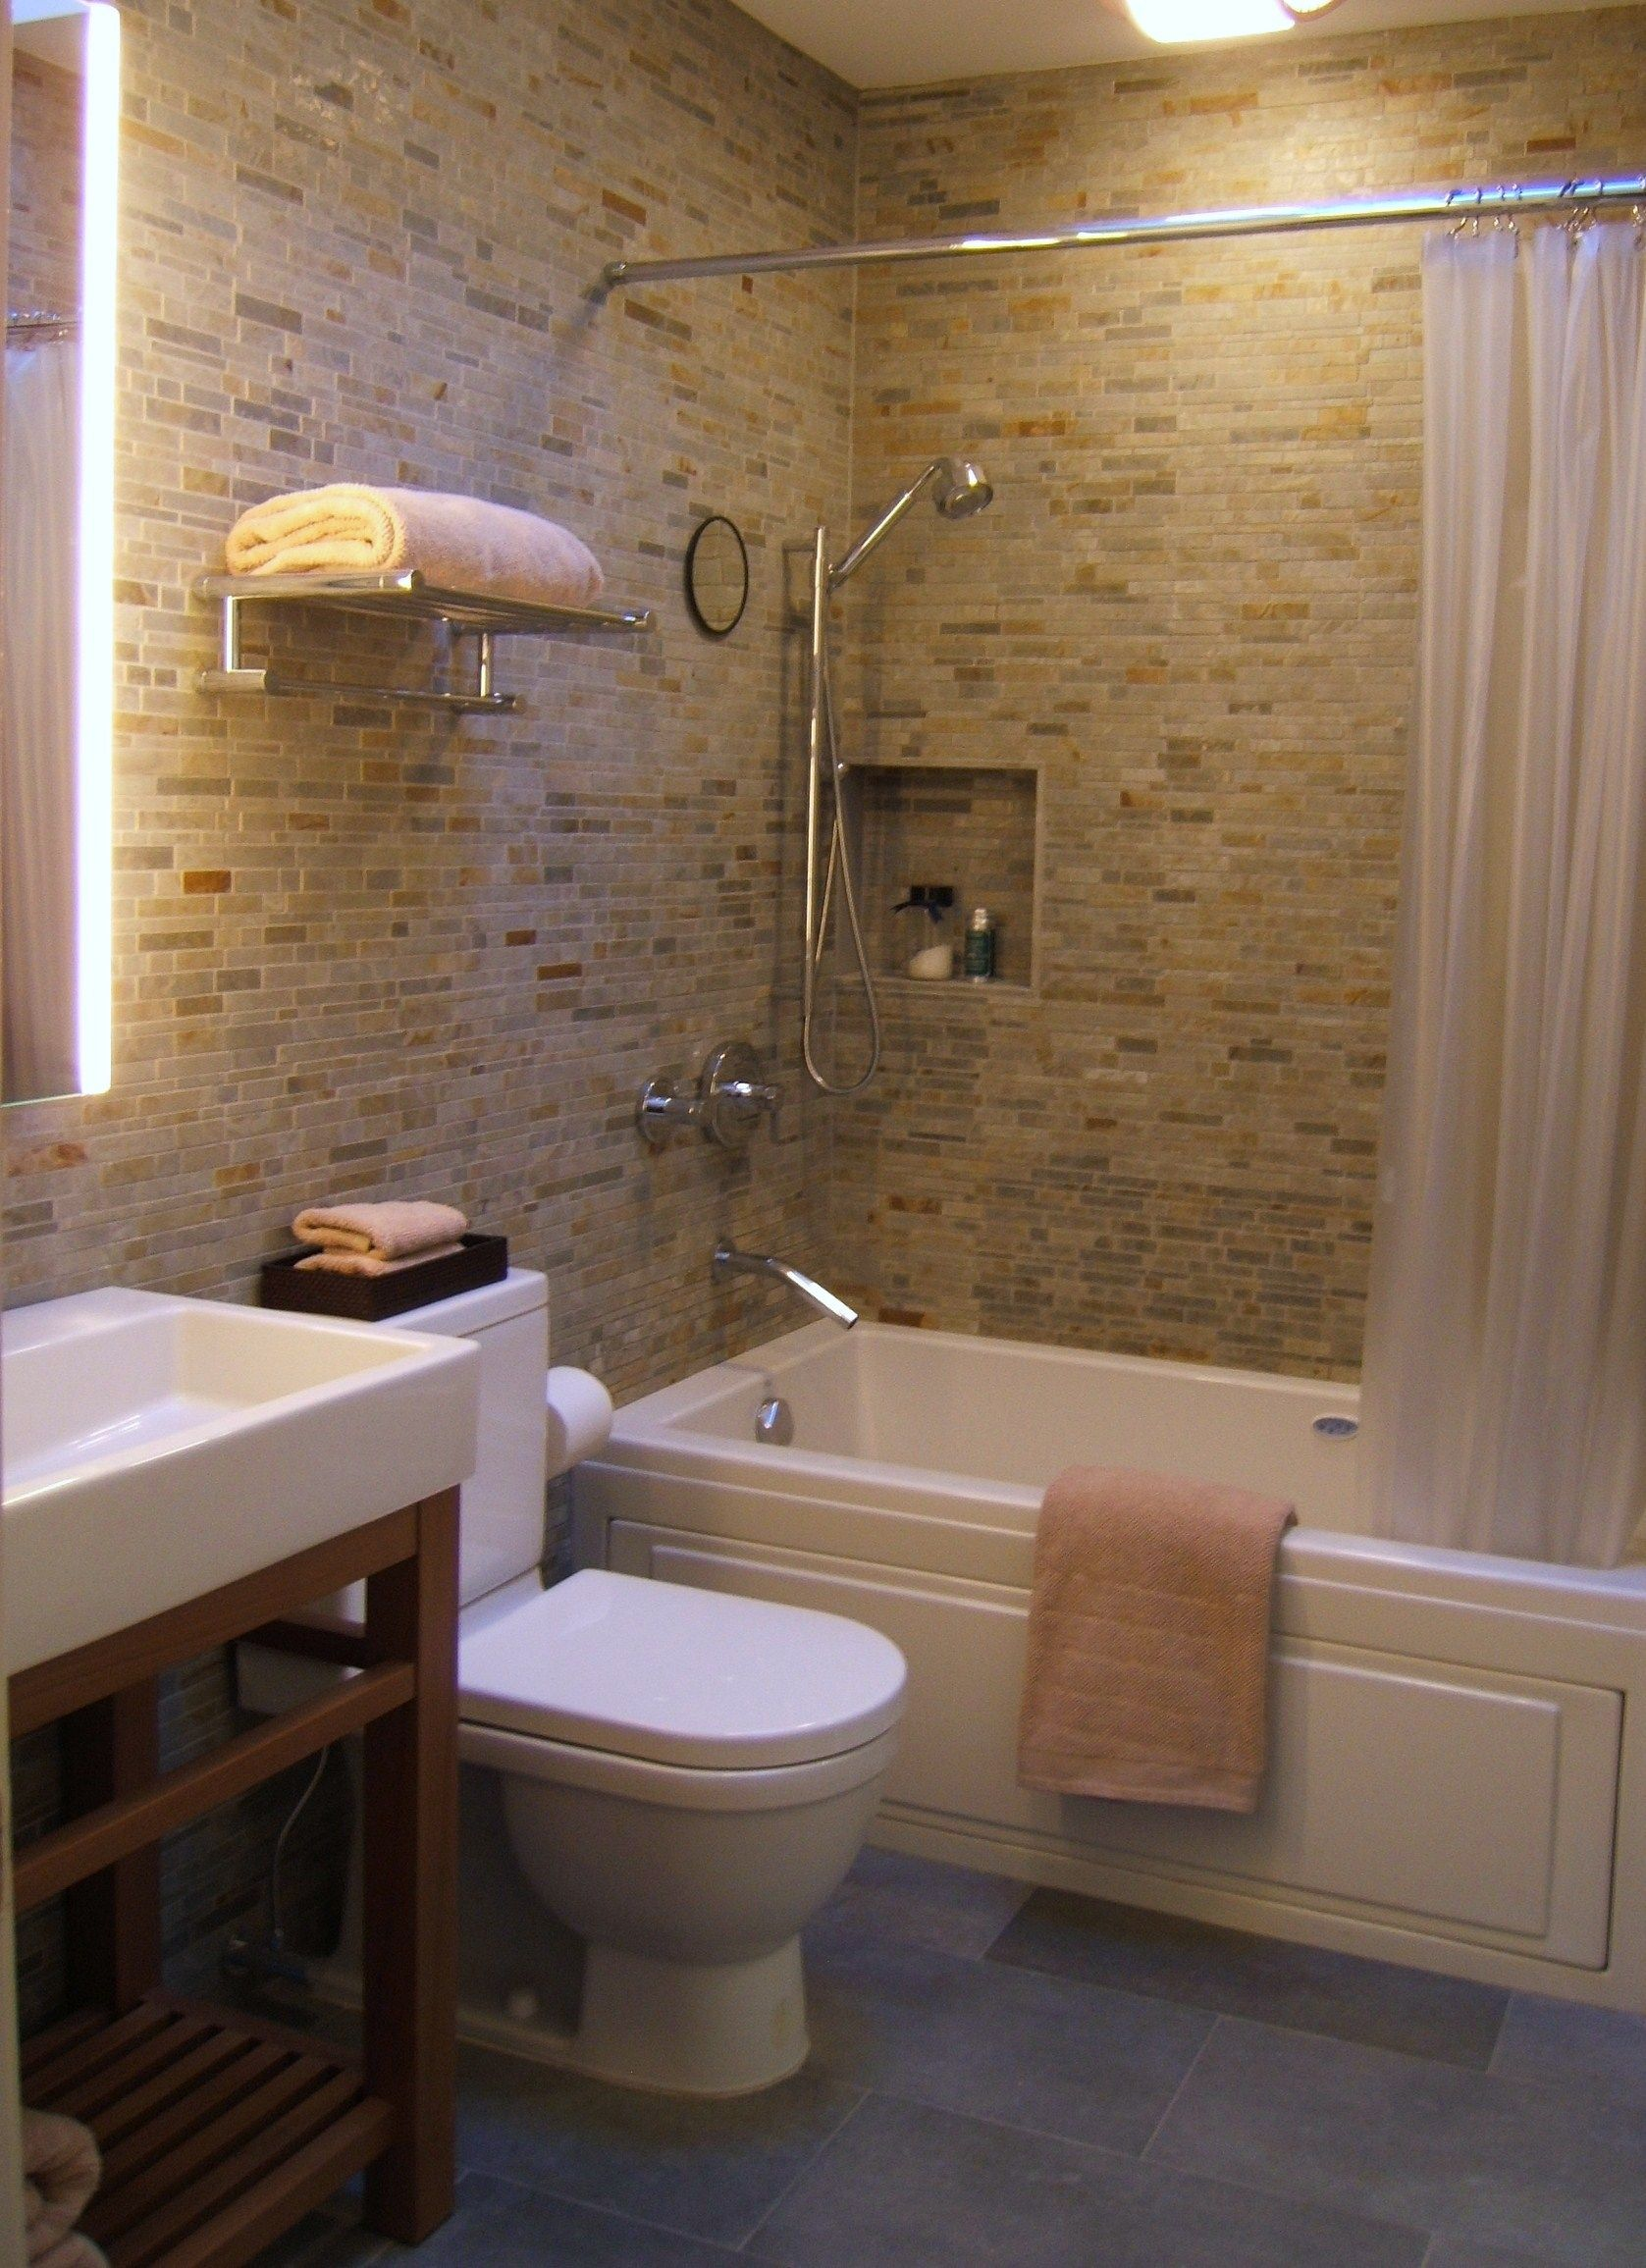 Small bathroom designs south africa small bath for Small bathroom remodel